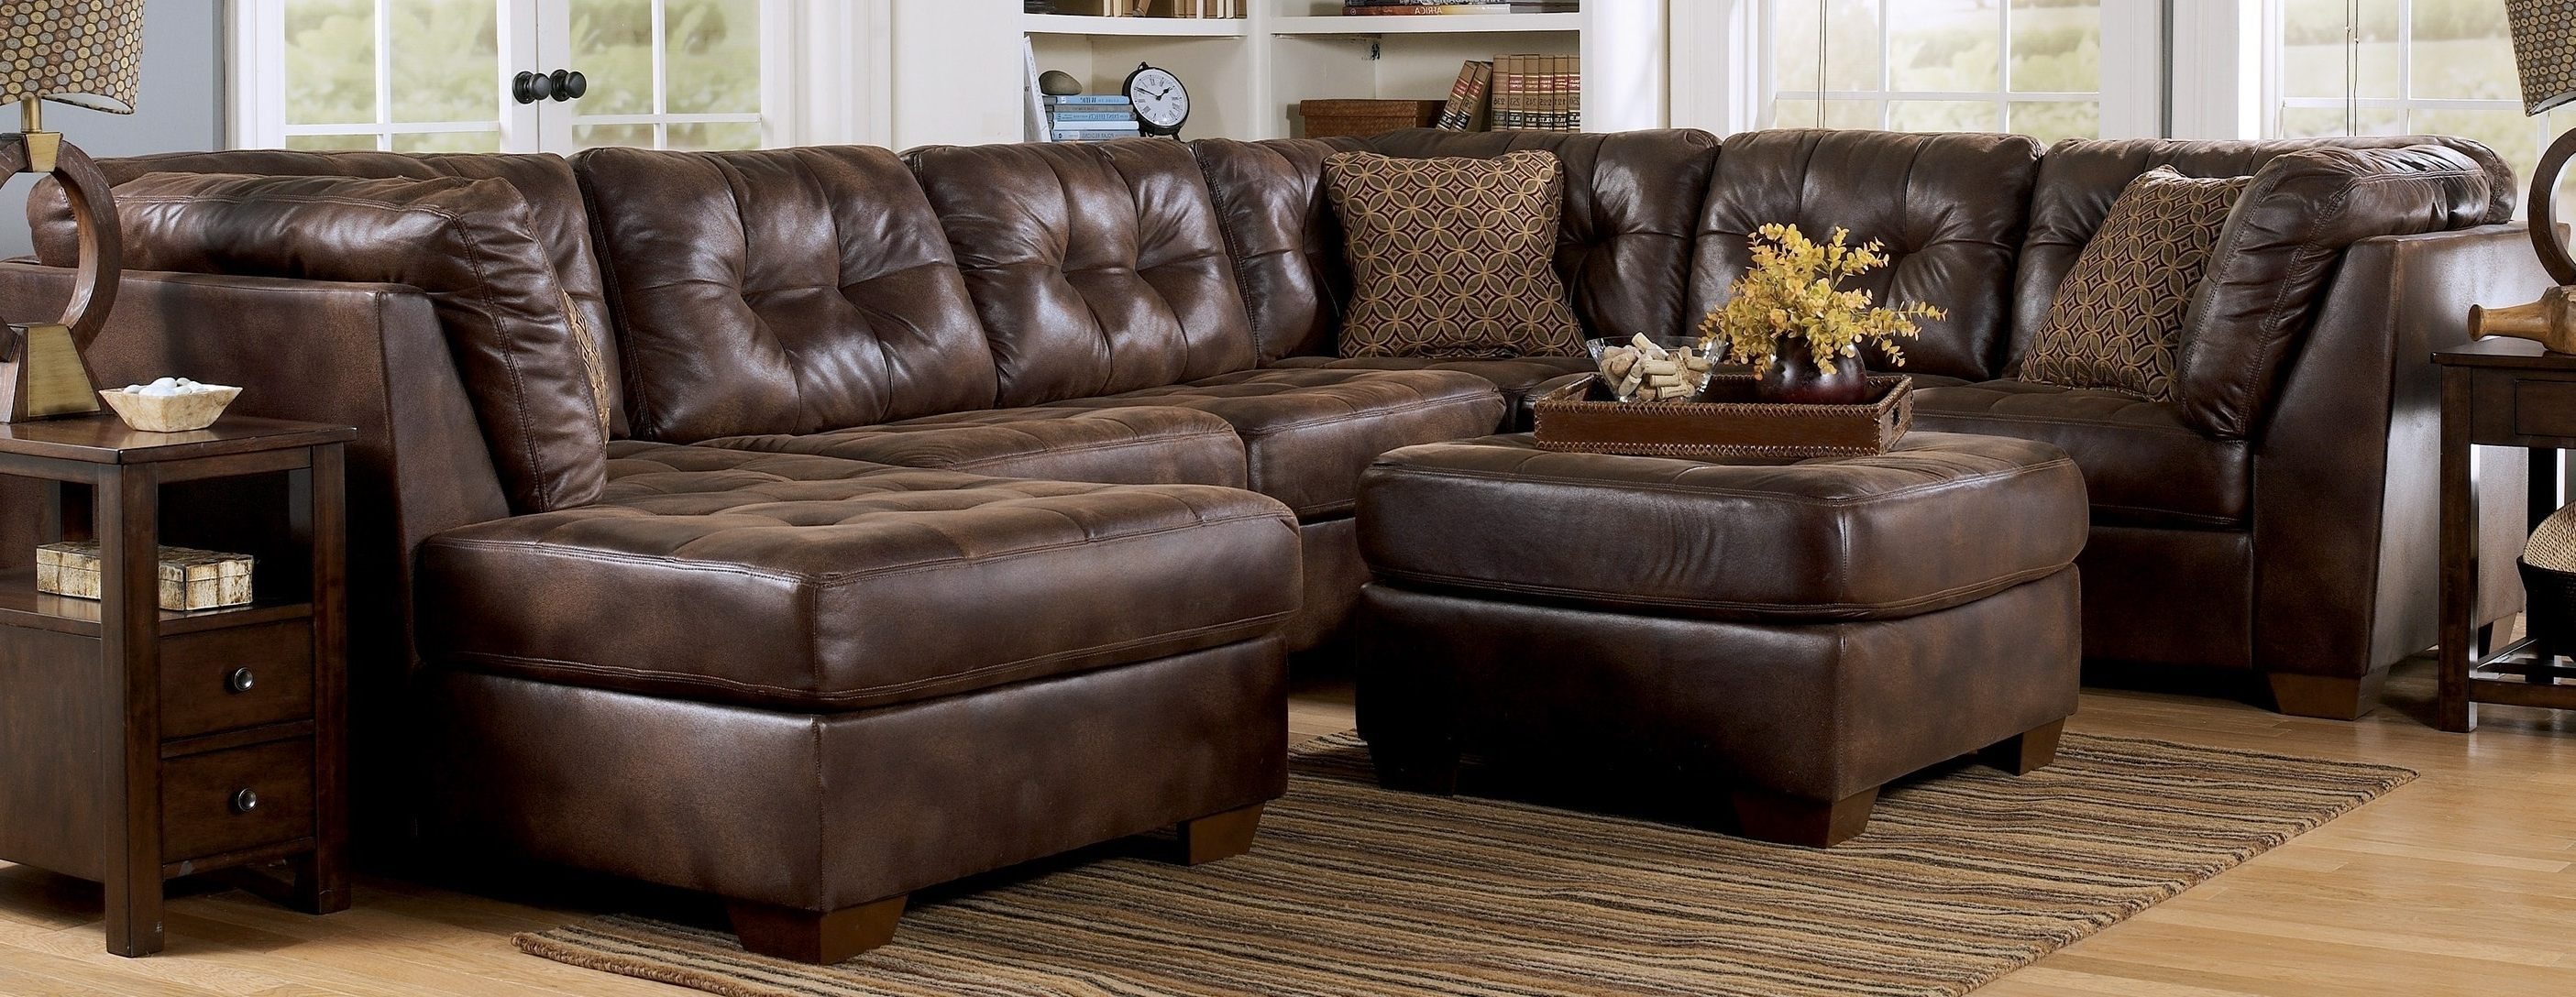 Leather Sectional Sleeper Sofa With Chaise – Tourdecarroll For Best And Newest Sectional Sofas Under  (View 8 of 20)